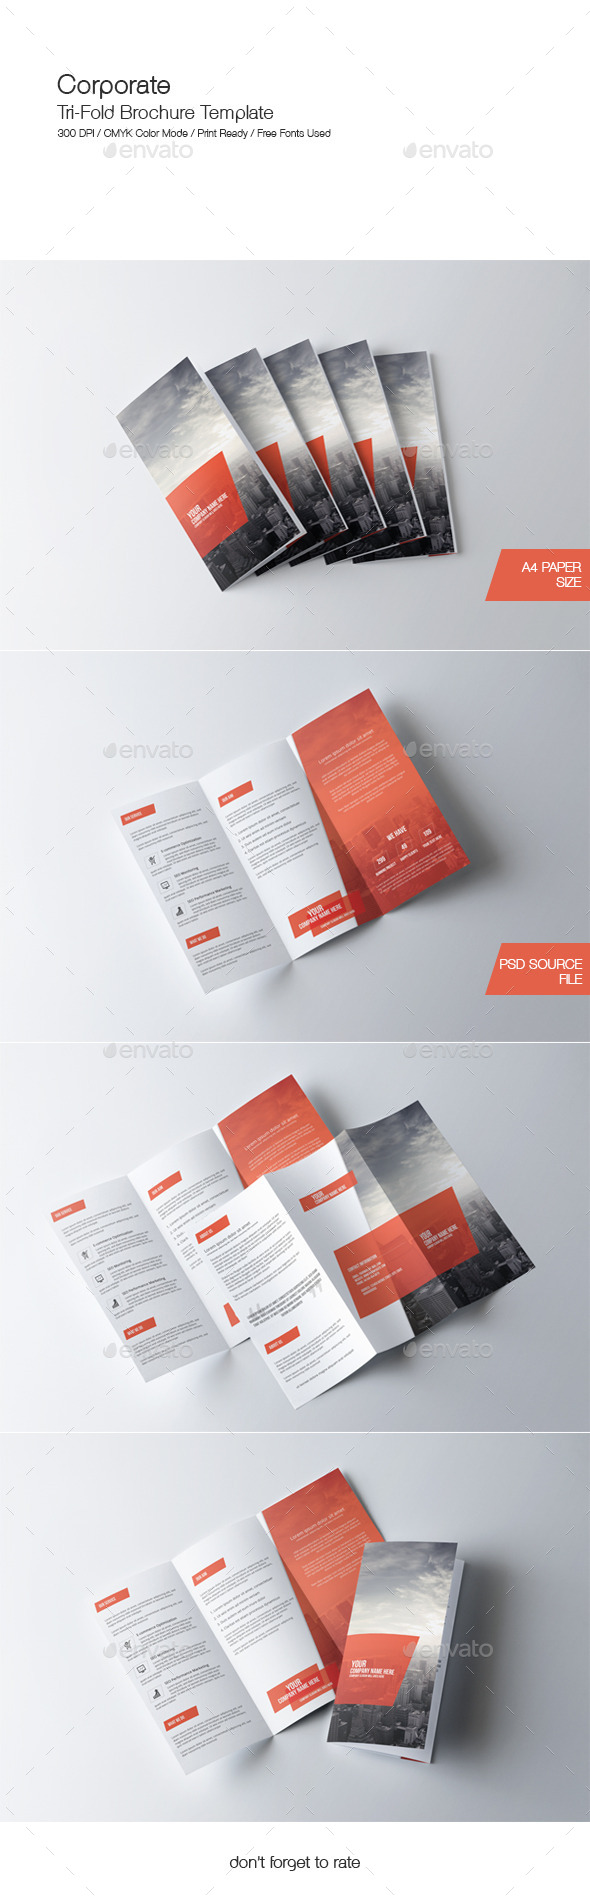 GraphicRiver Corporate Tri-Fold Brochure Template 9766860